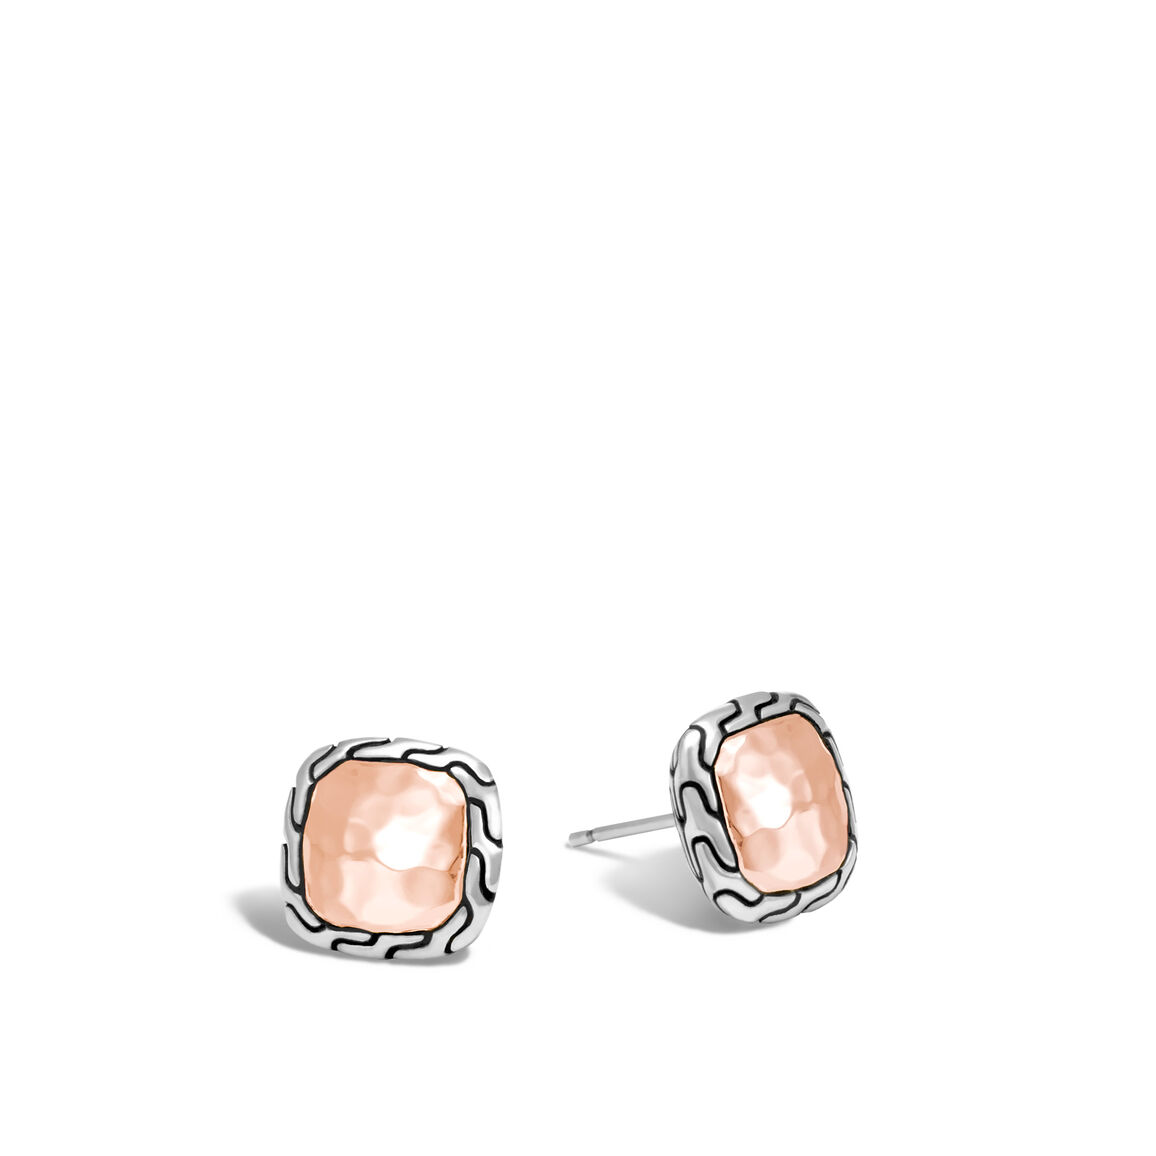 Classic Chain Stud Earring, Silver, Hammered 18K Rose Gold